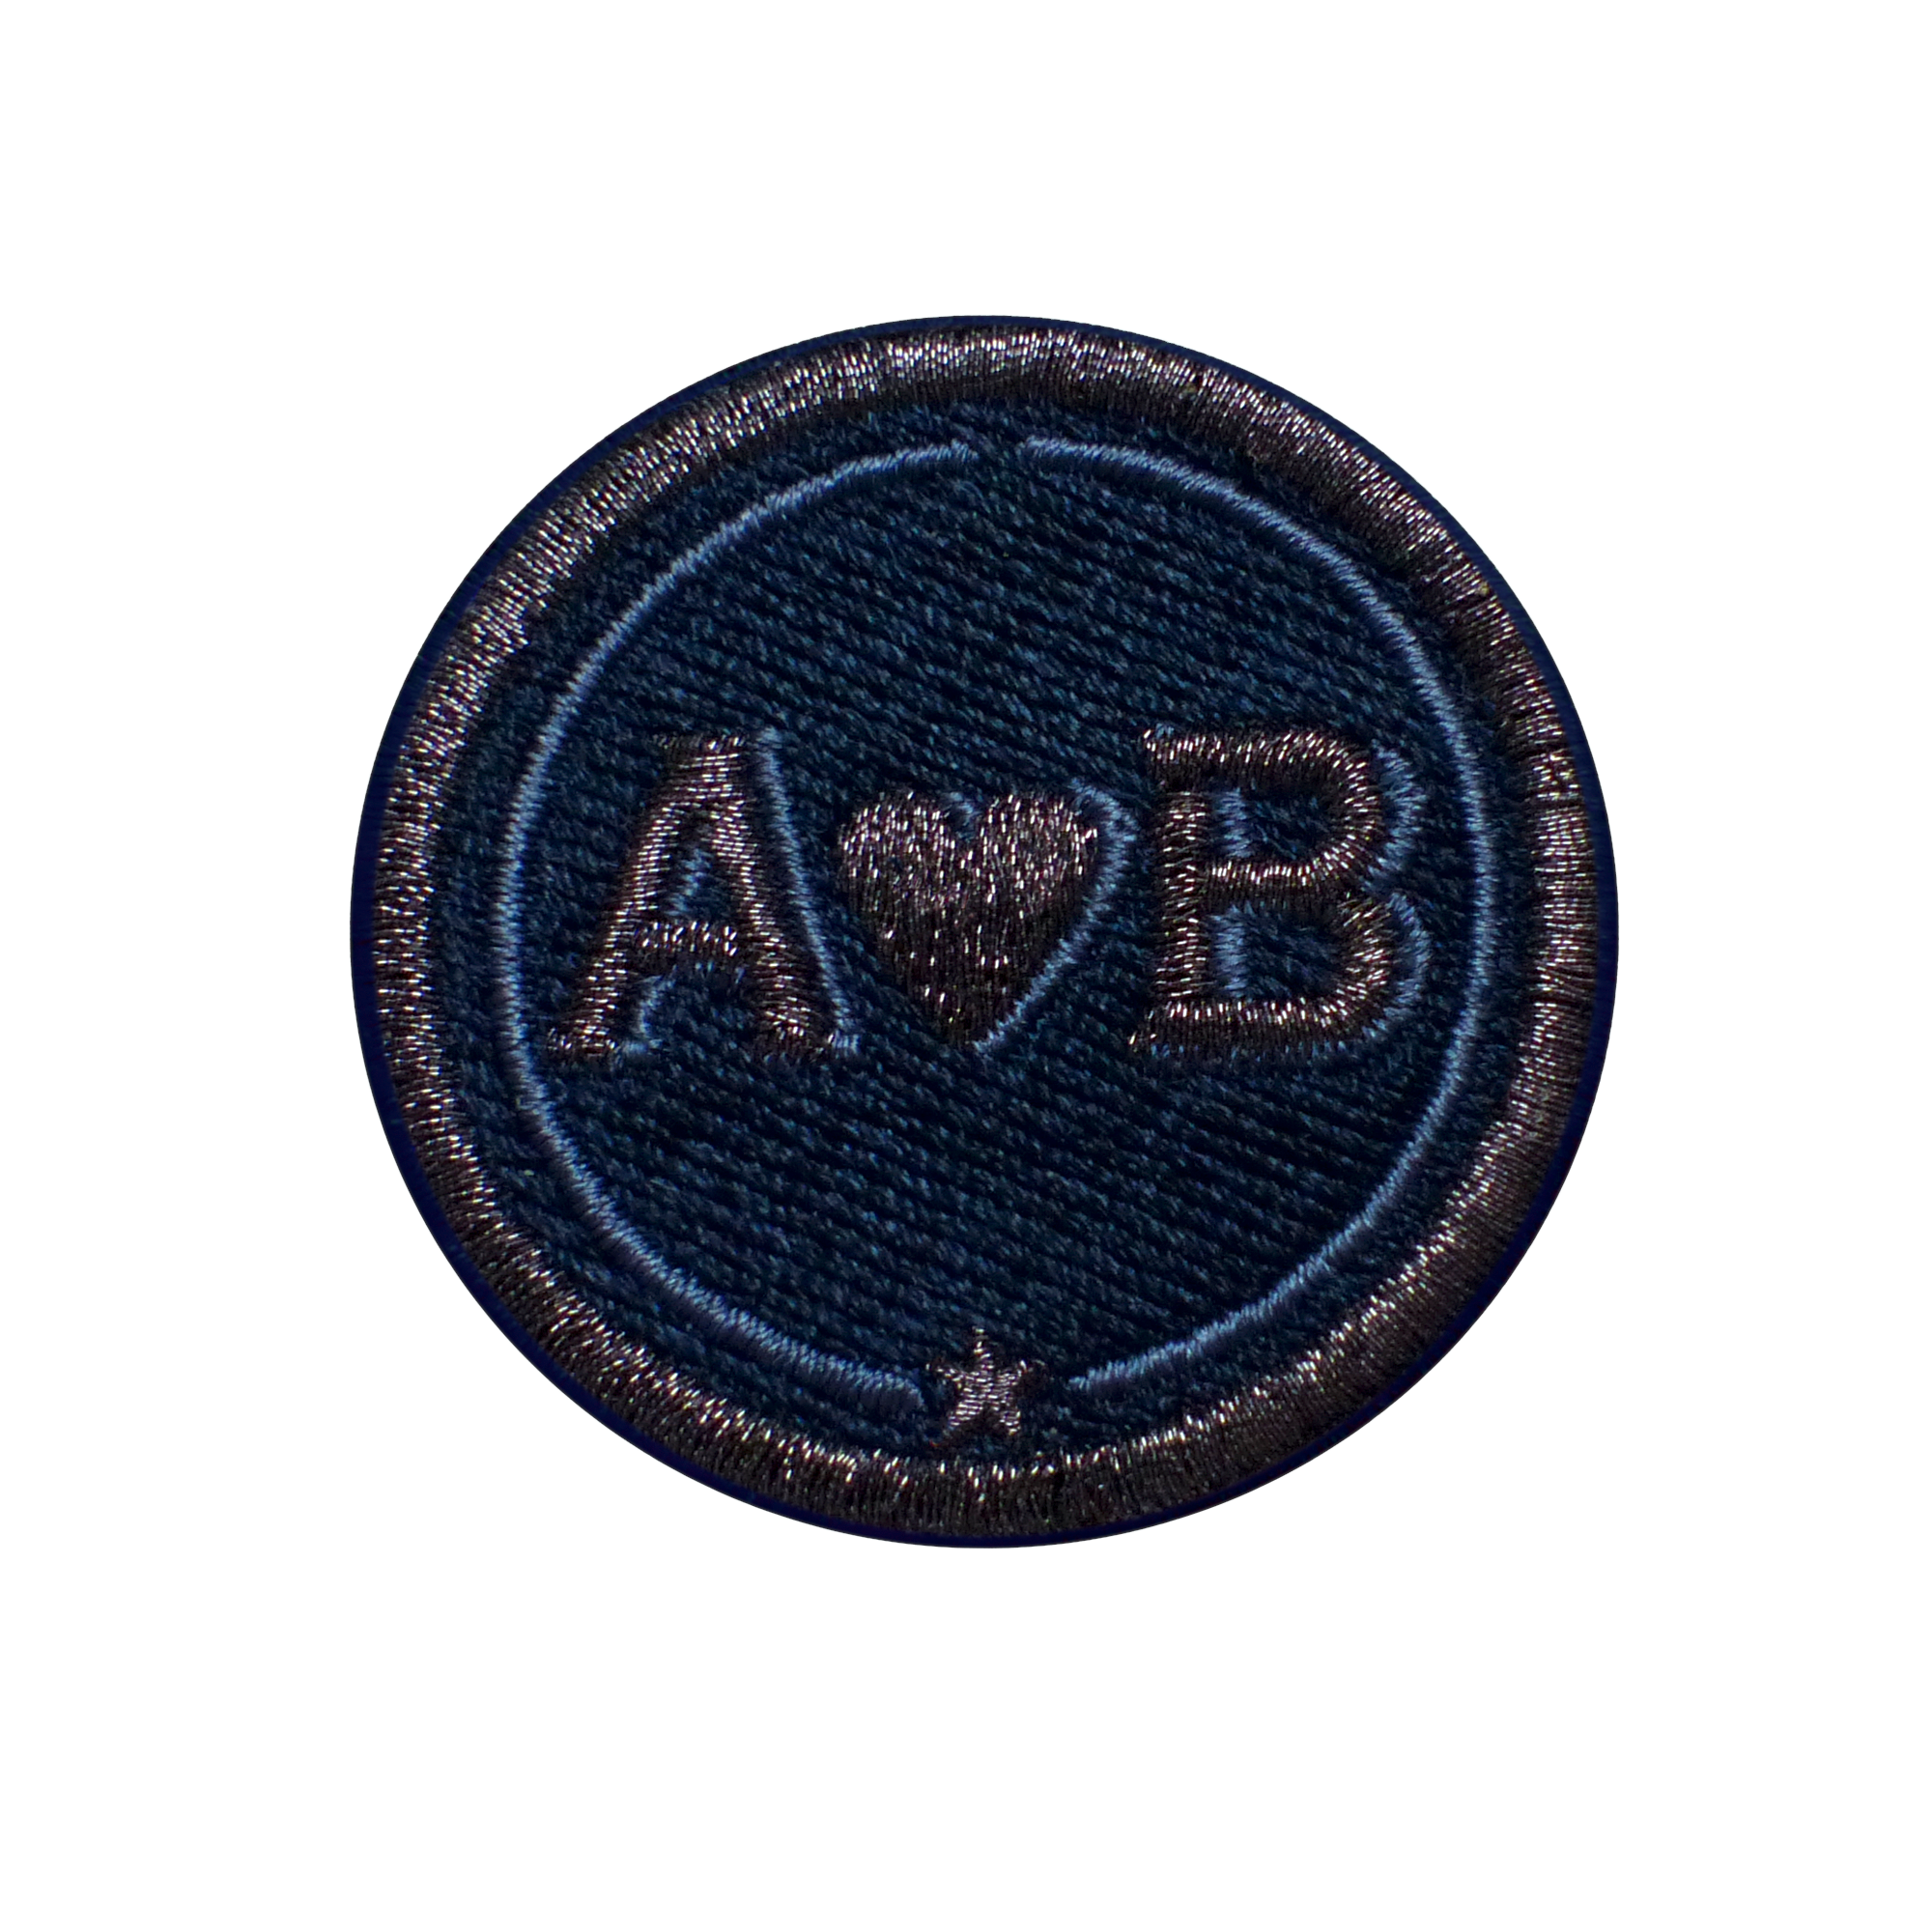 Label · LOVE 4cm · anthracite metallic/navy blue · customizable